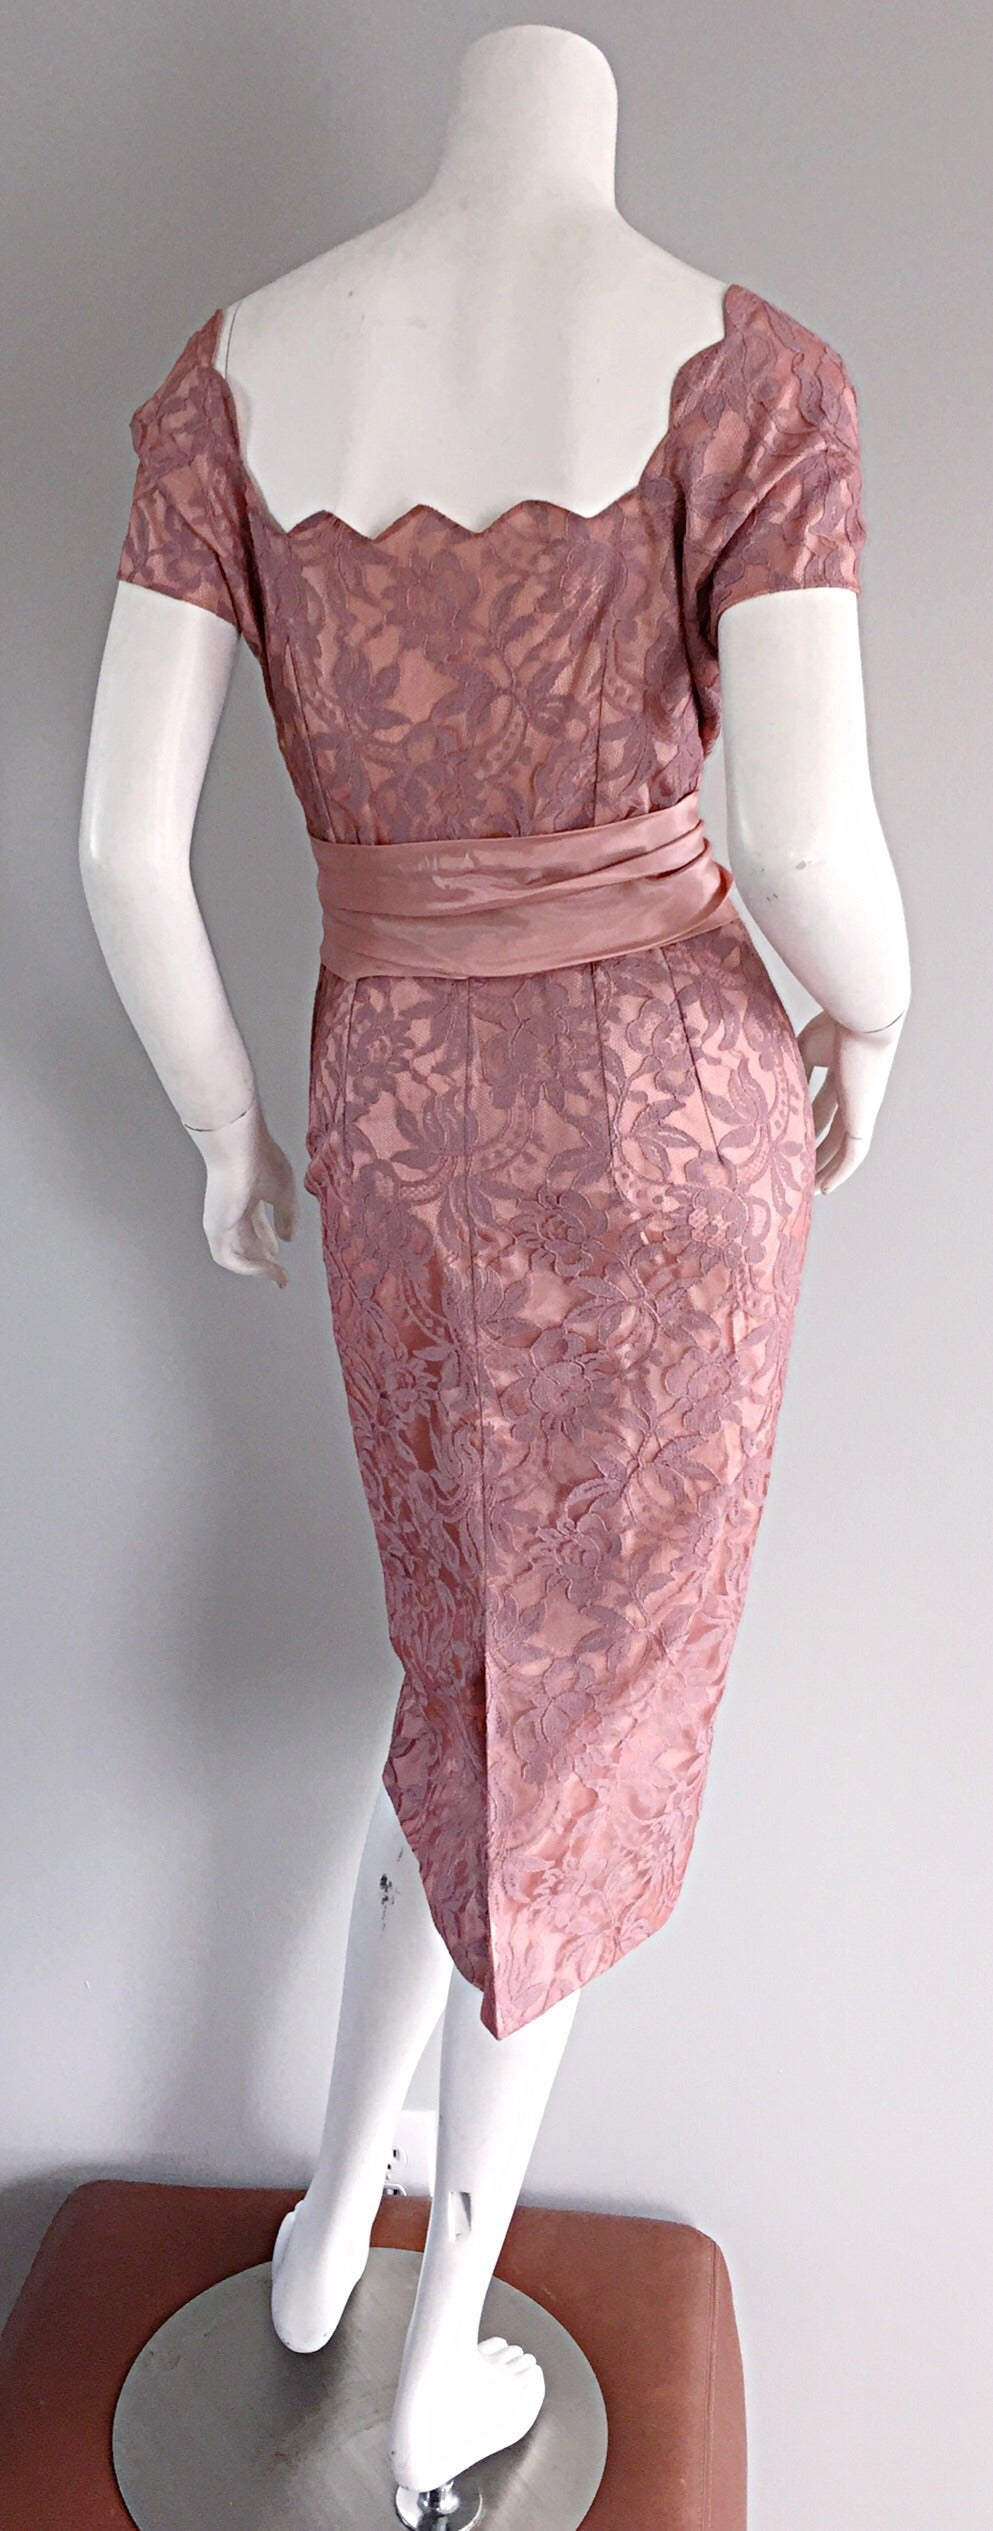 Beautiful Vintage 1950s 50s Pink Lace Wiggle Dress w/ Scalloped Edges 5